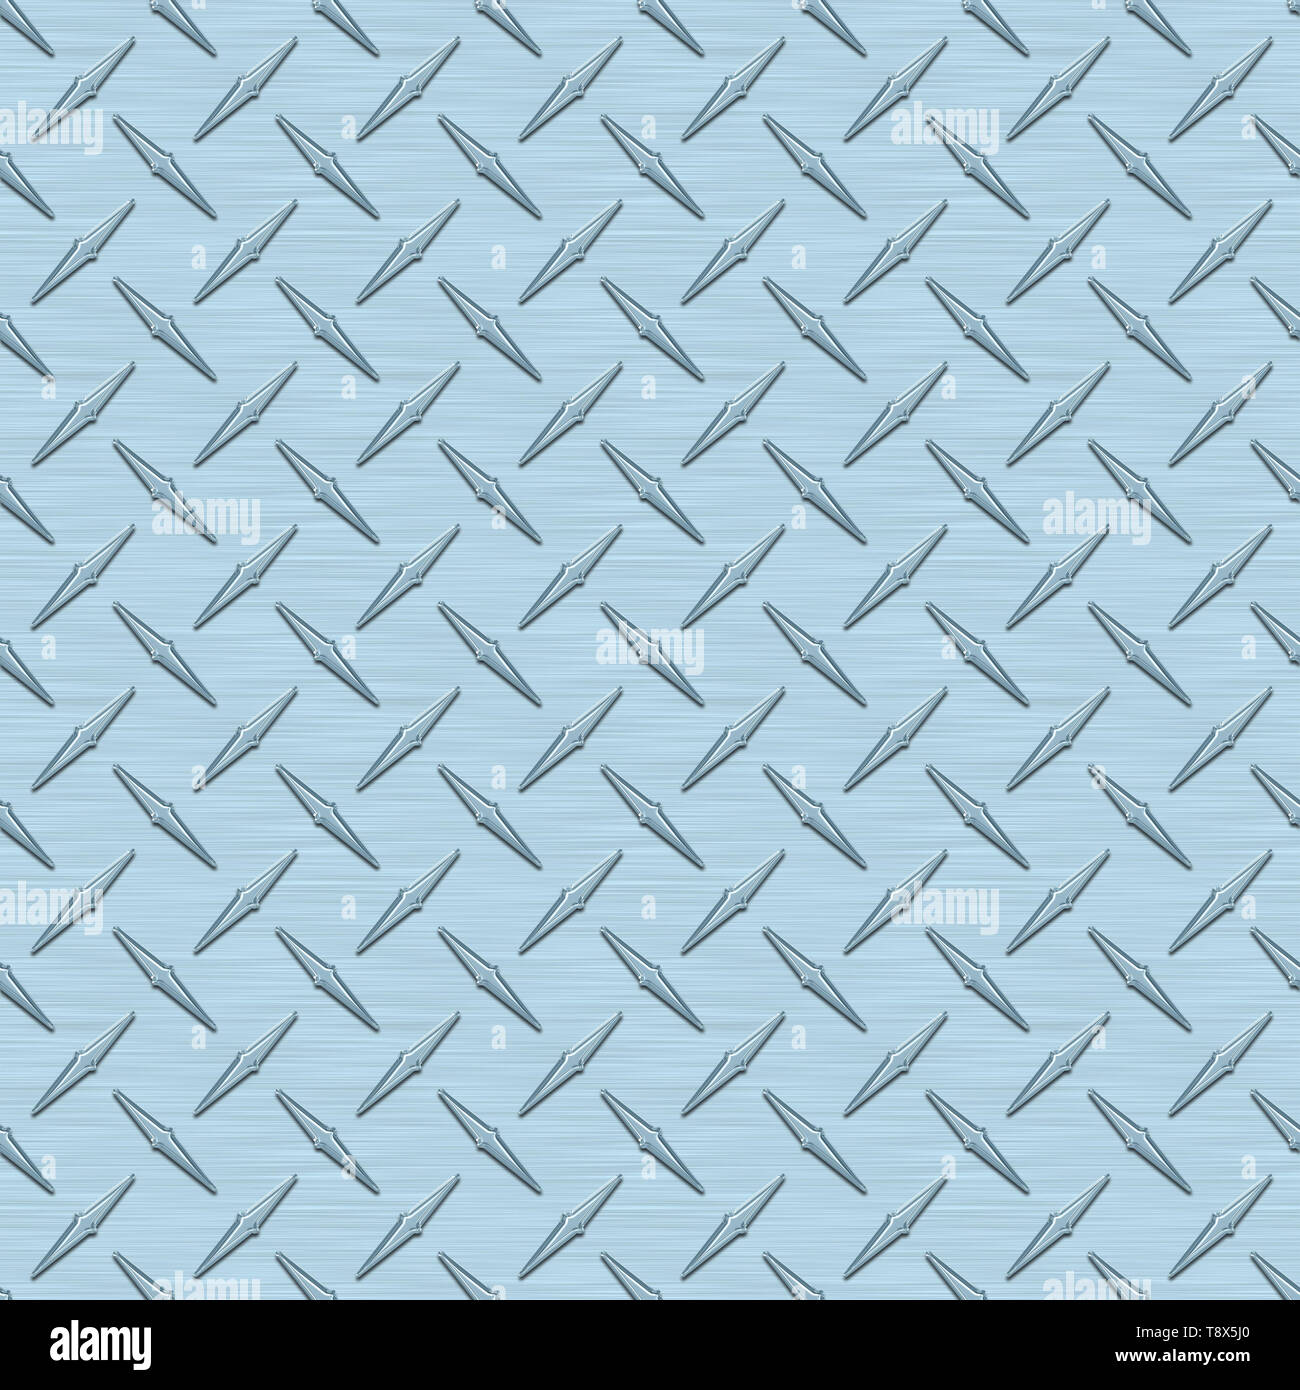 Ice Blue Diamond Plate Metal Seamless Texture Tile - Stock Image